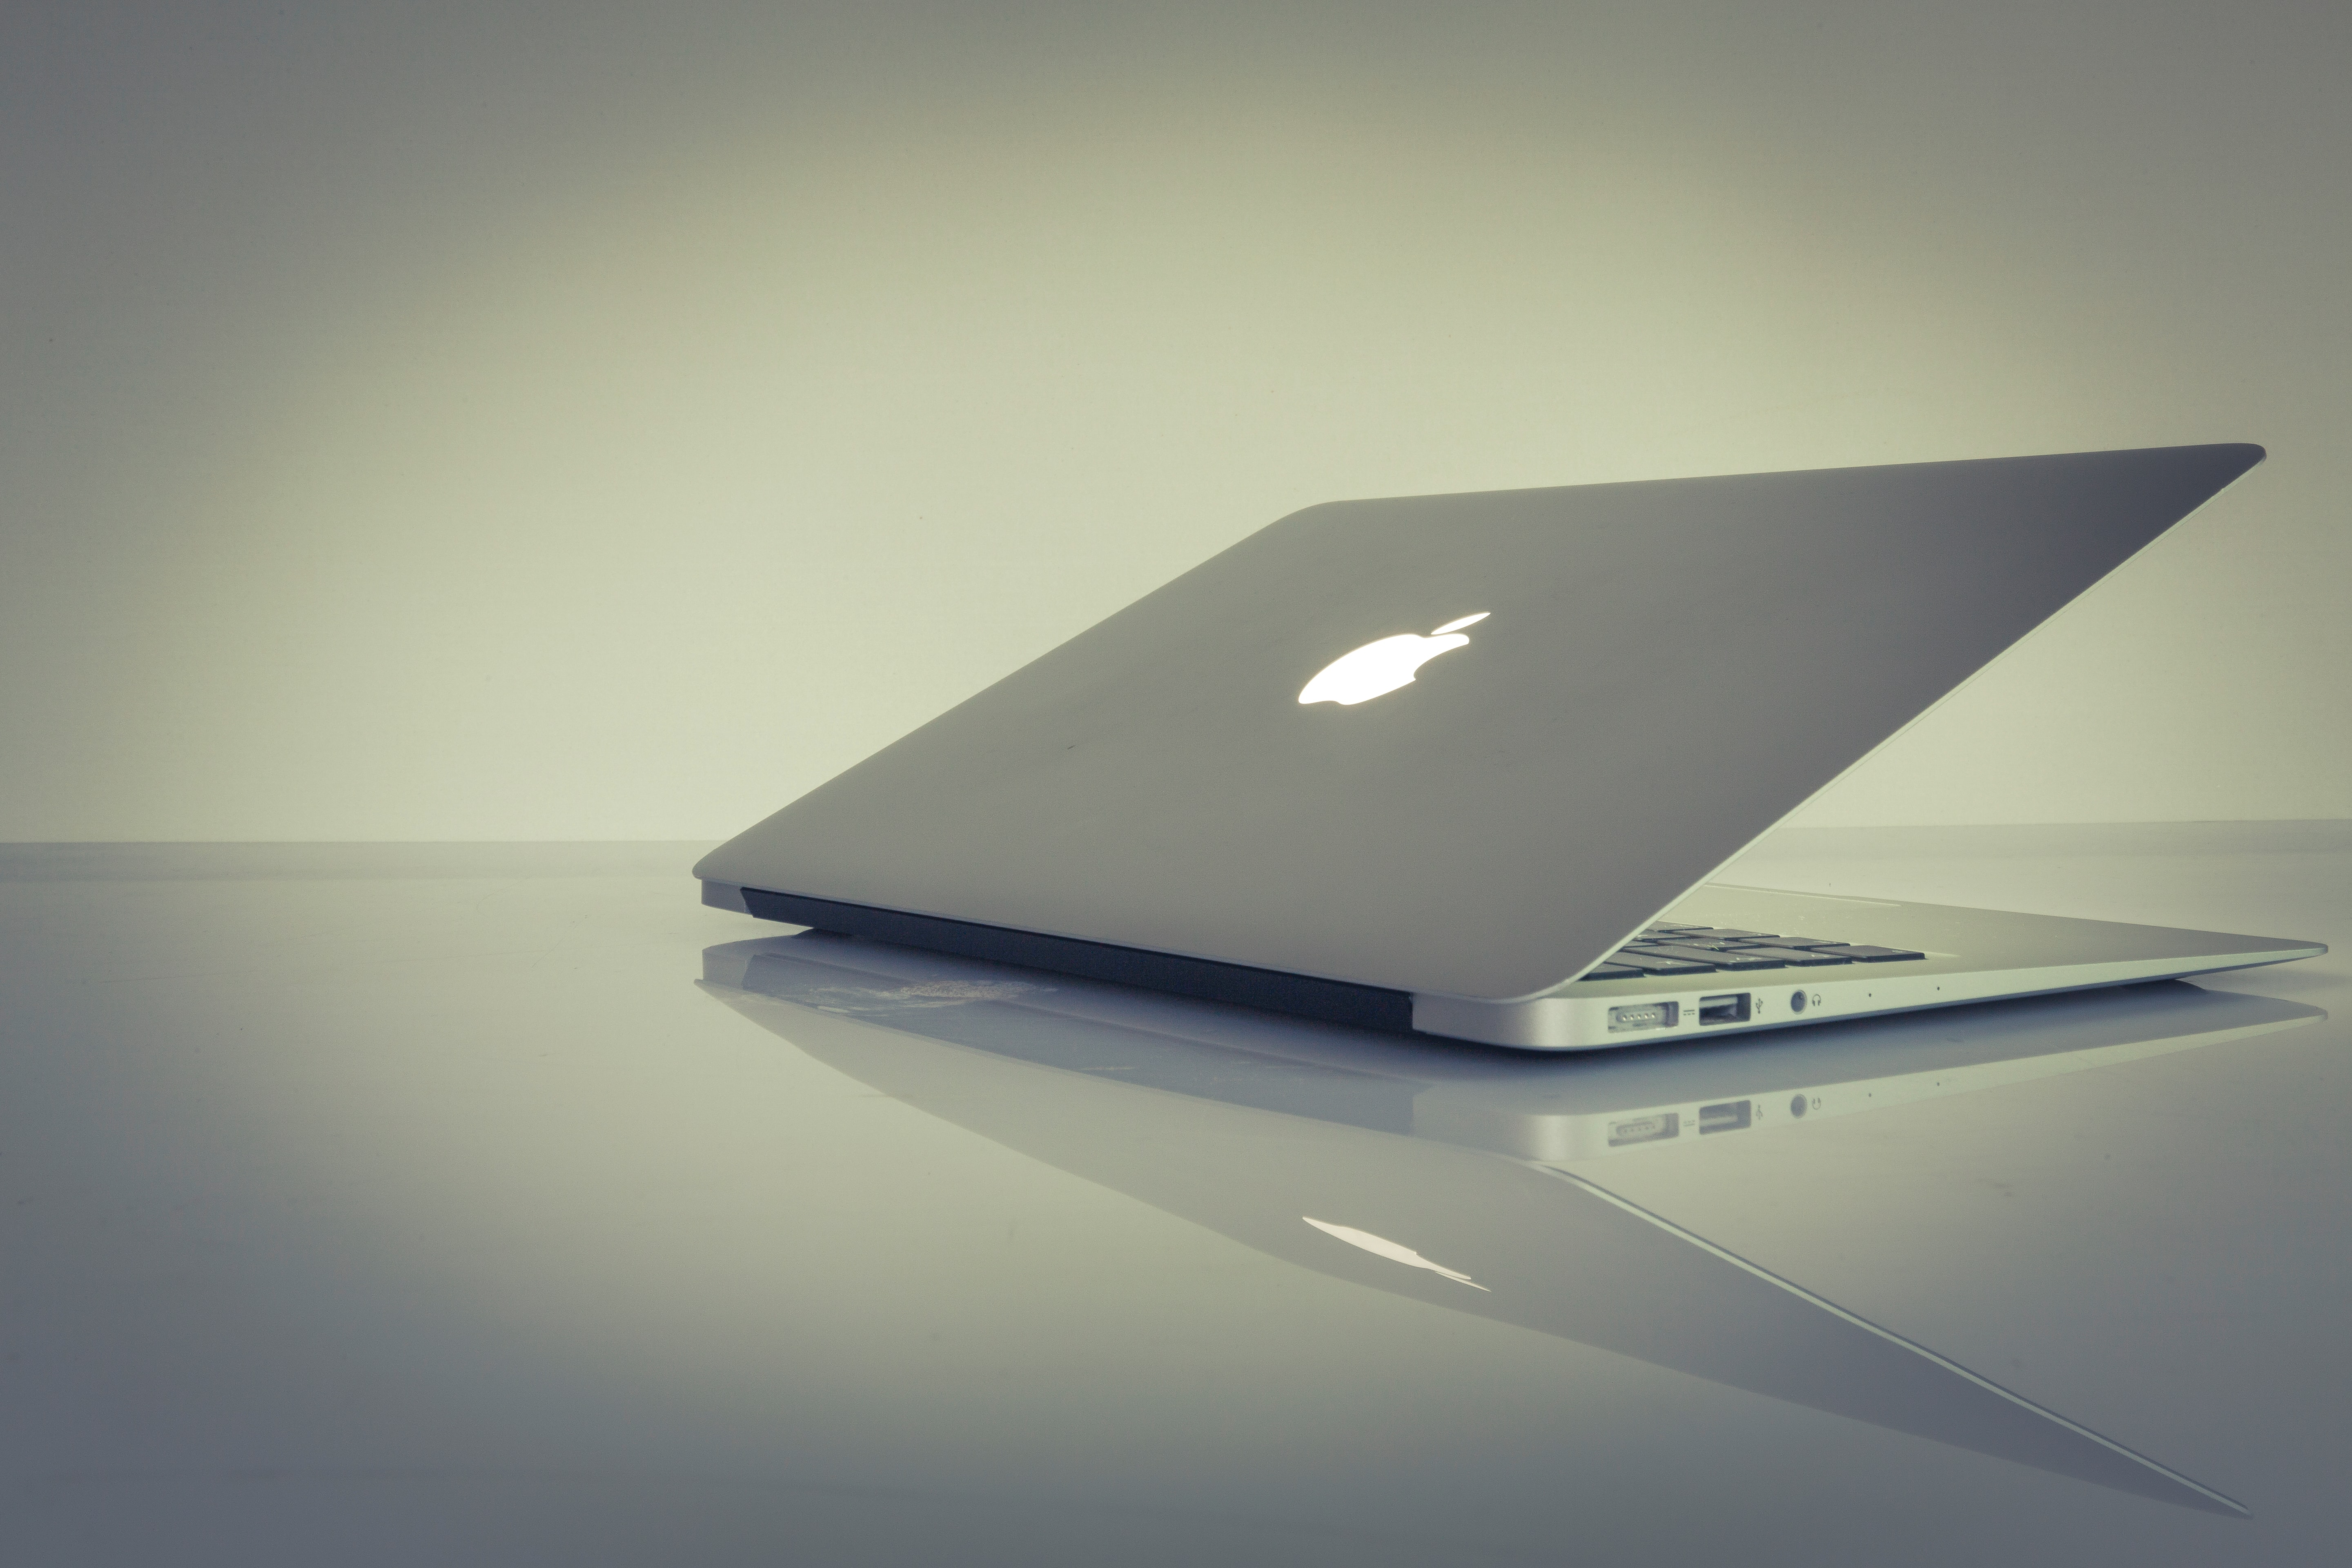 A half-closed MacBook on a reflective surface